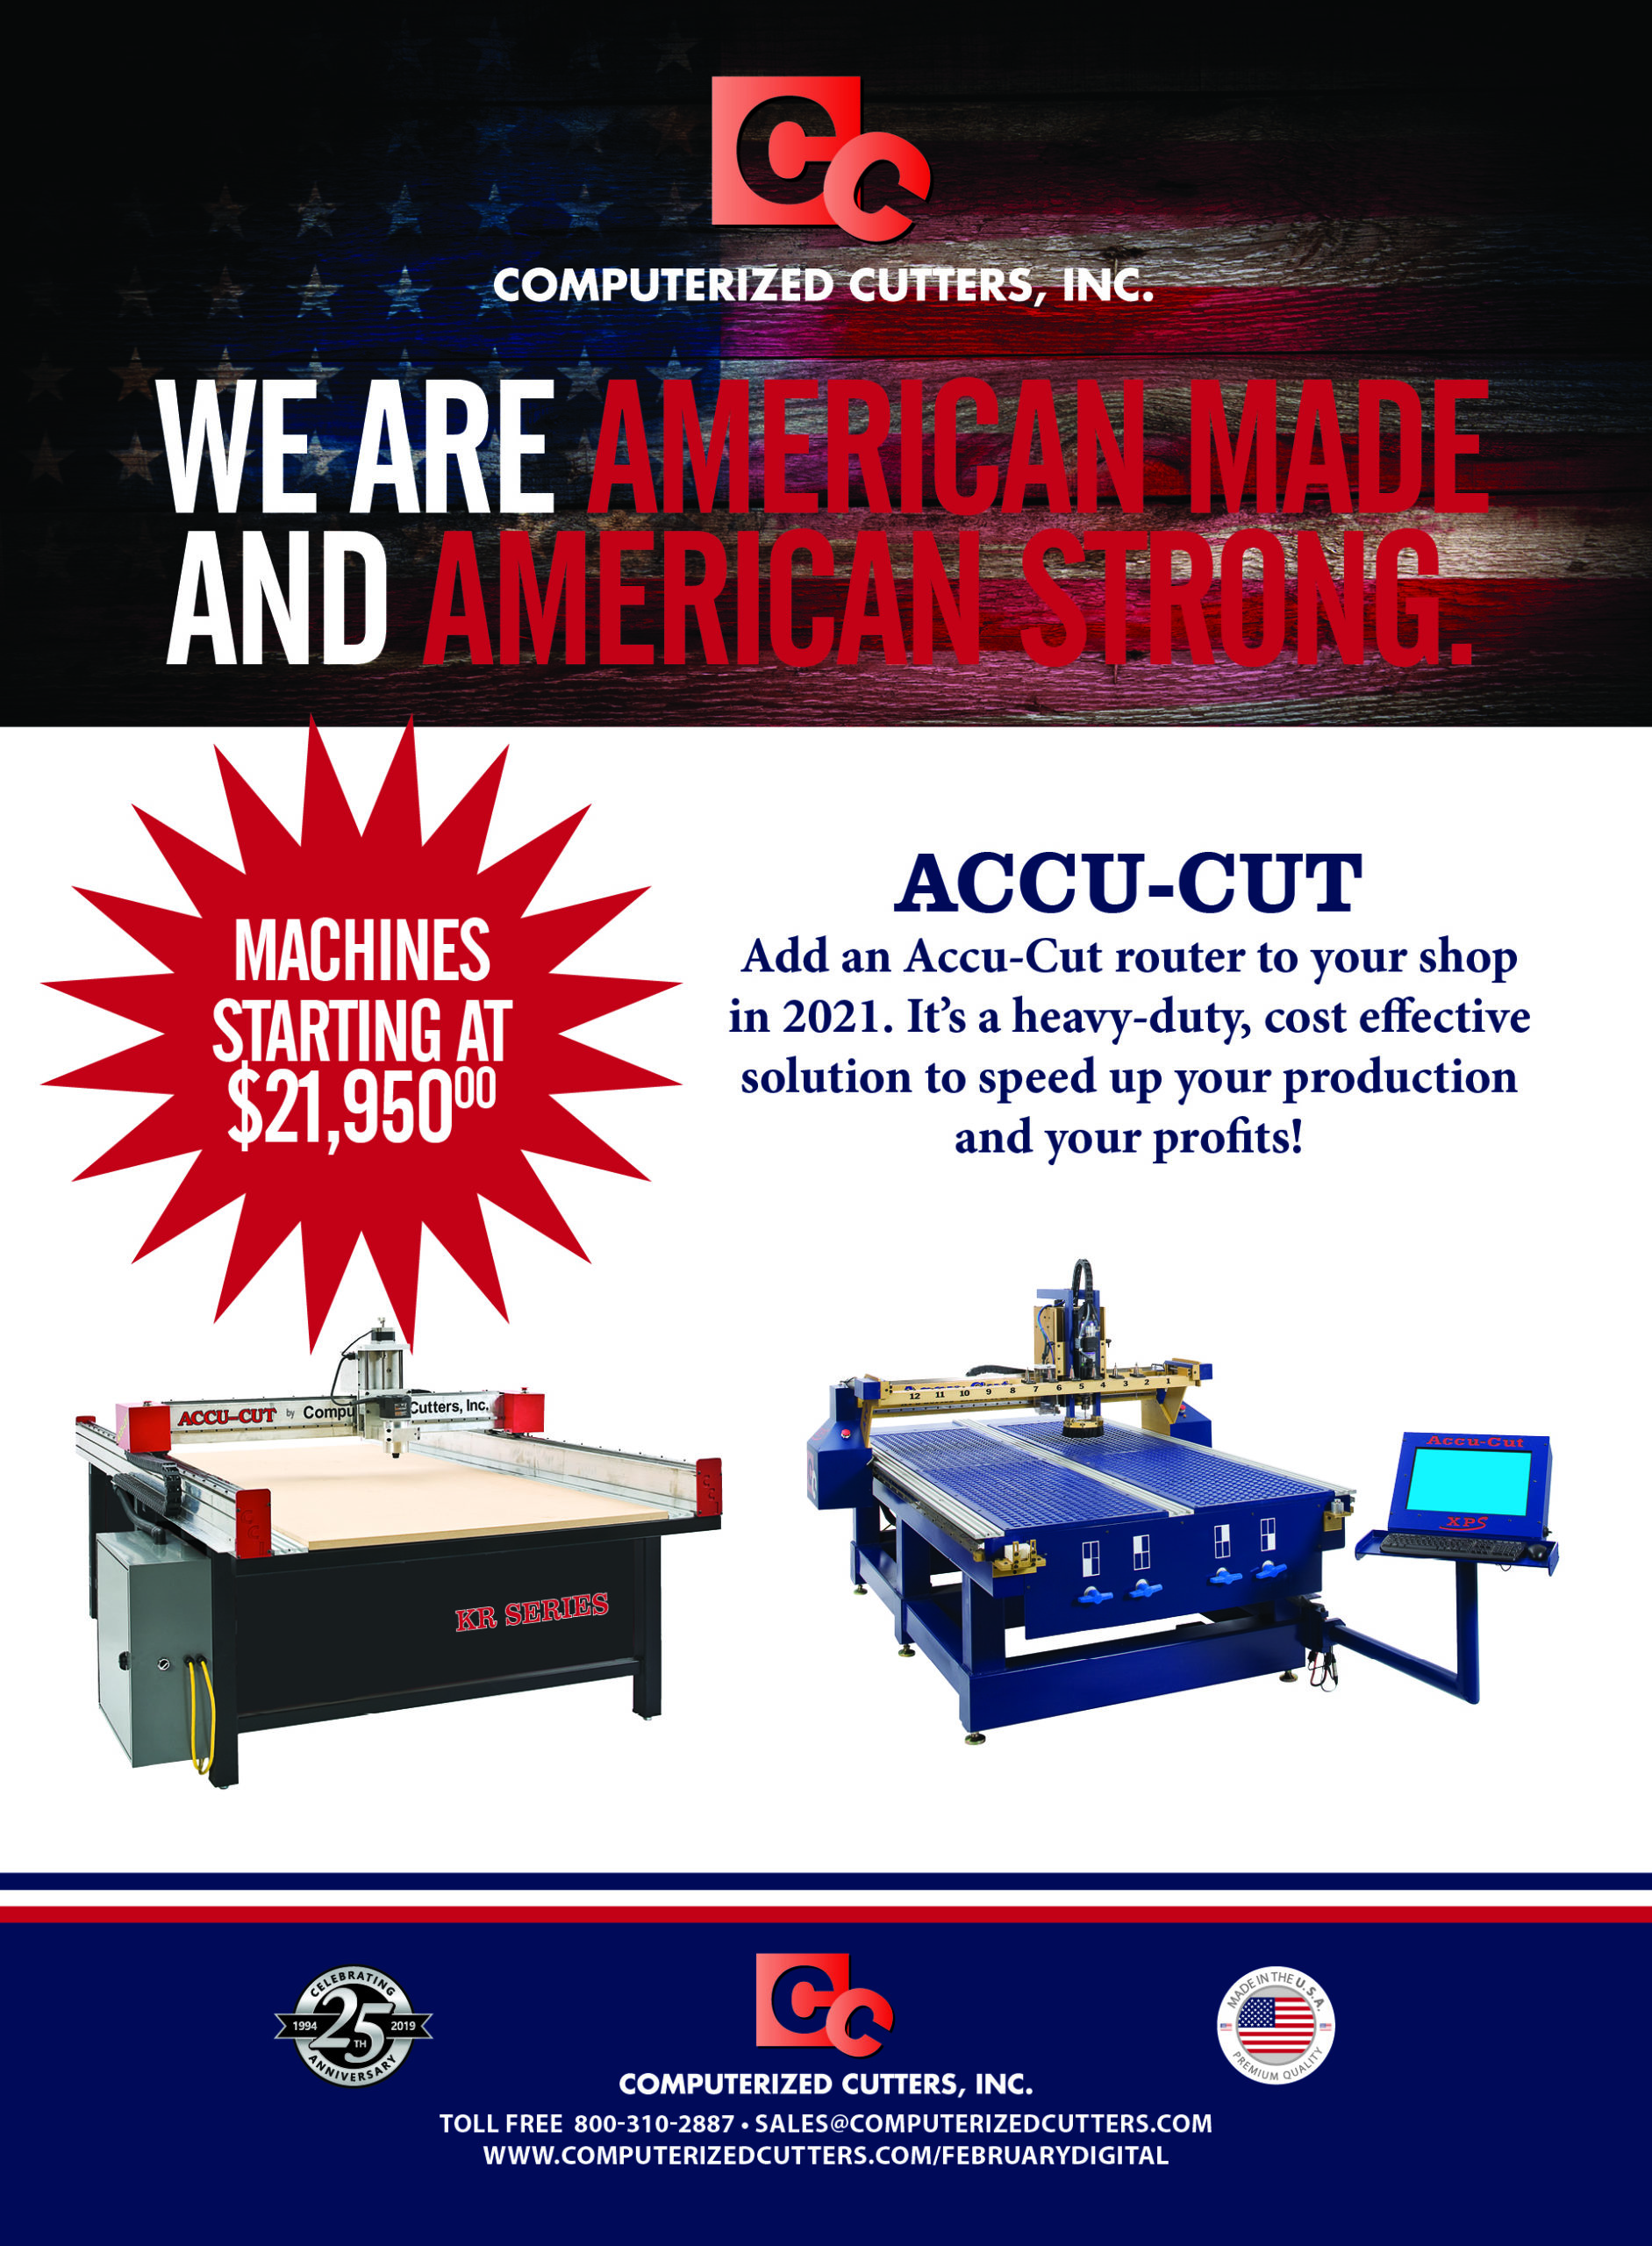 computerized cutters february digital ad